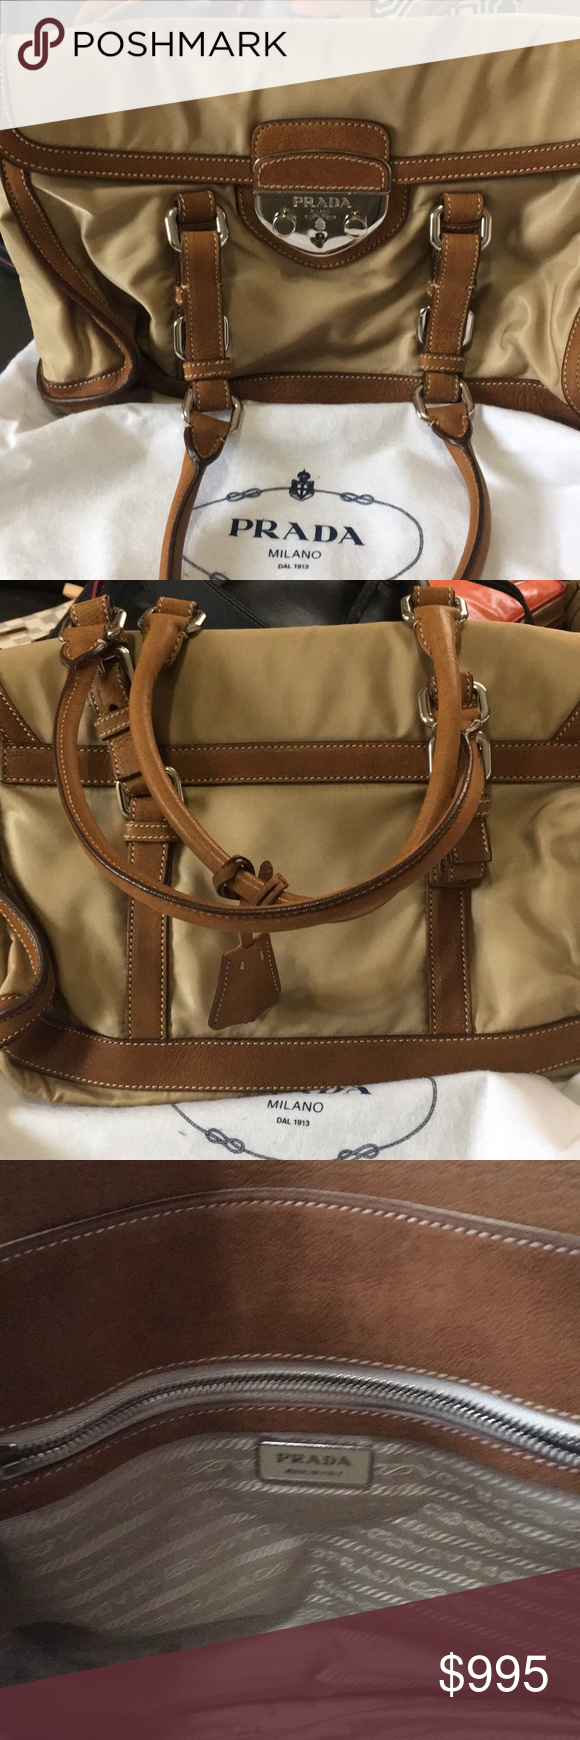 f6f631a01372a9 Prada Tessuto canvas and leather handbag handbag bought from SF prada  boutique I'm trying